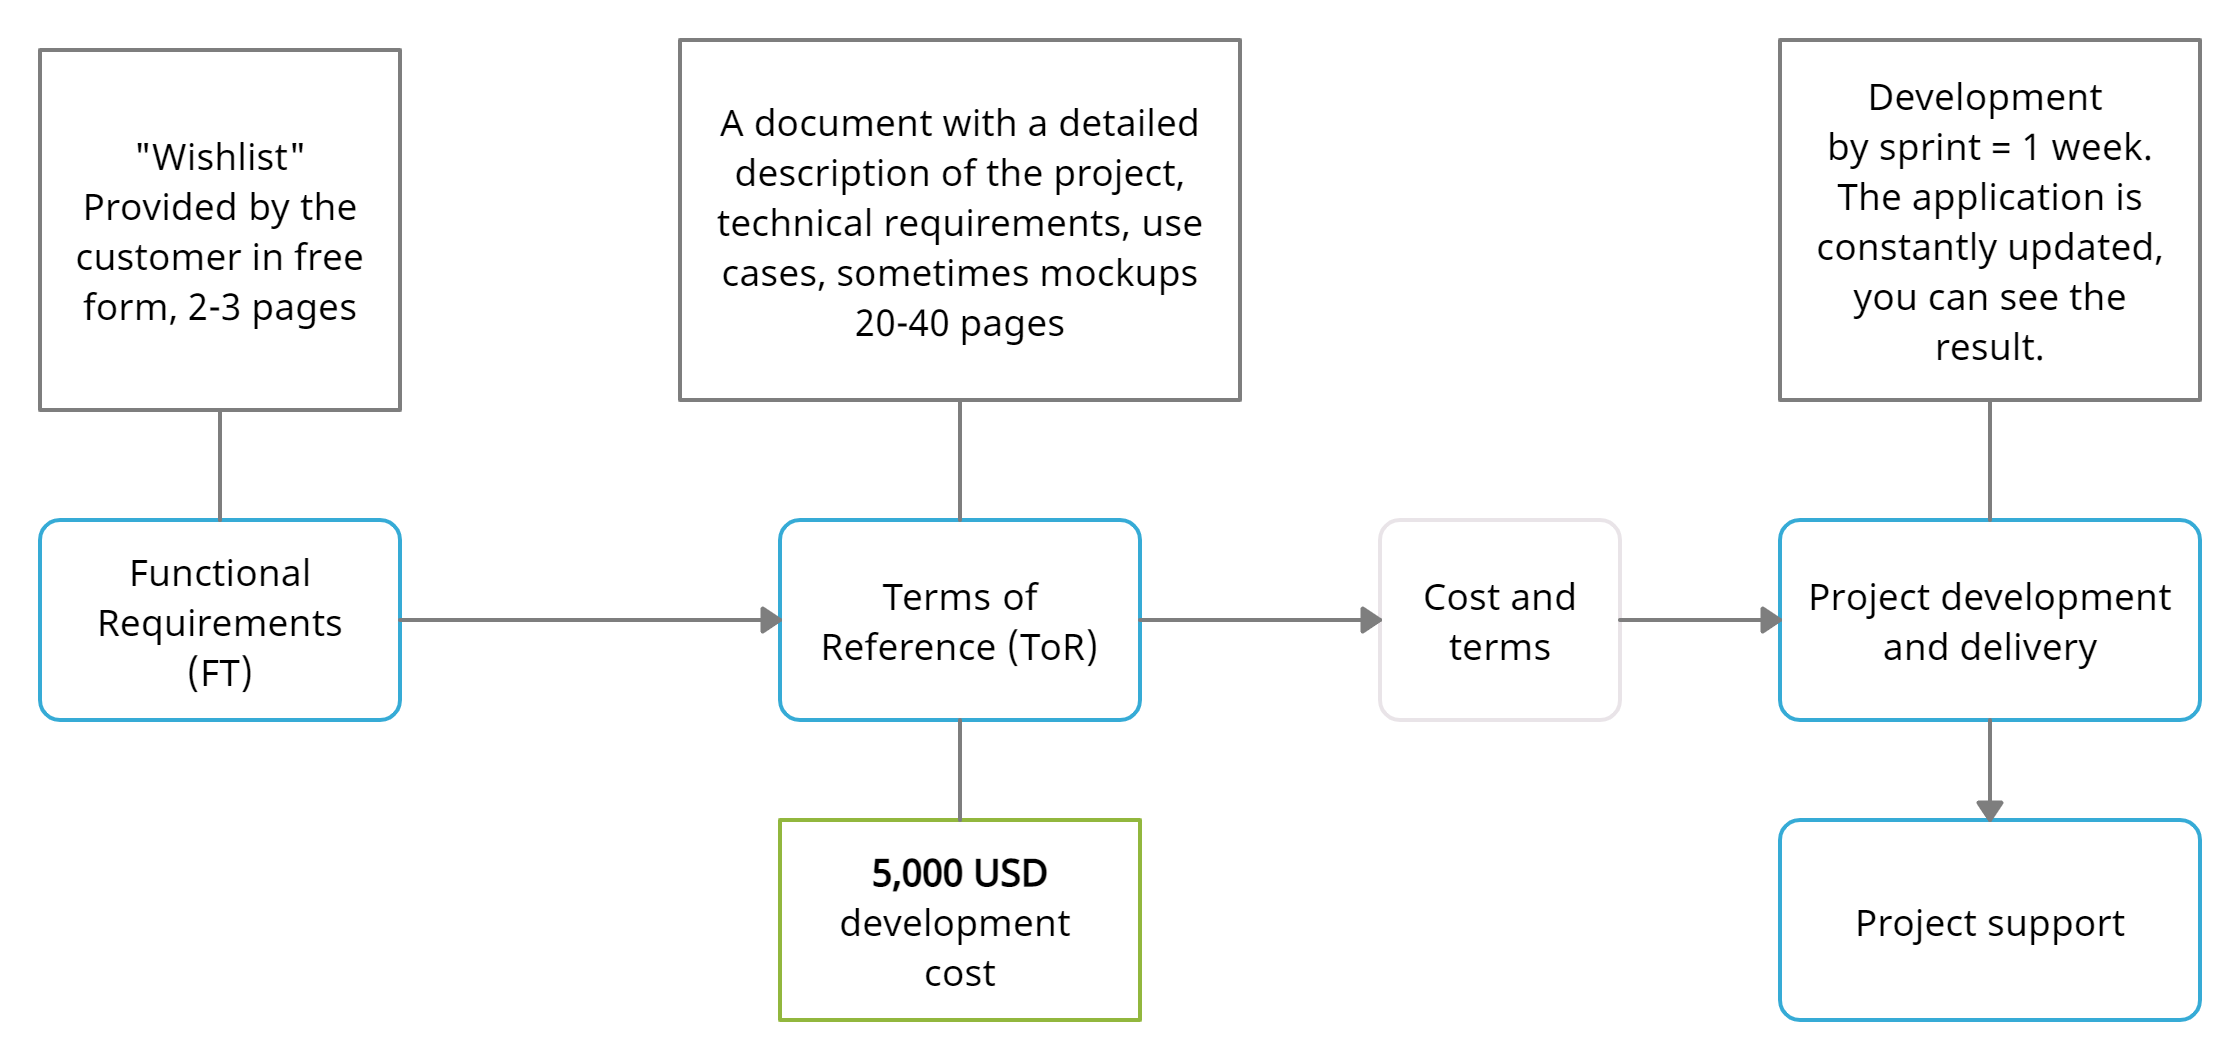 Stages of project development